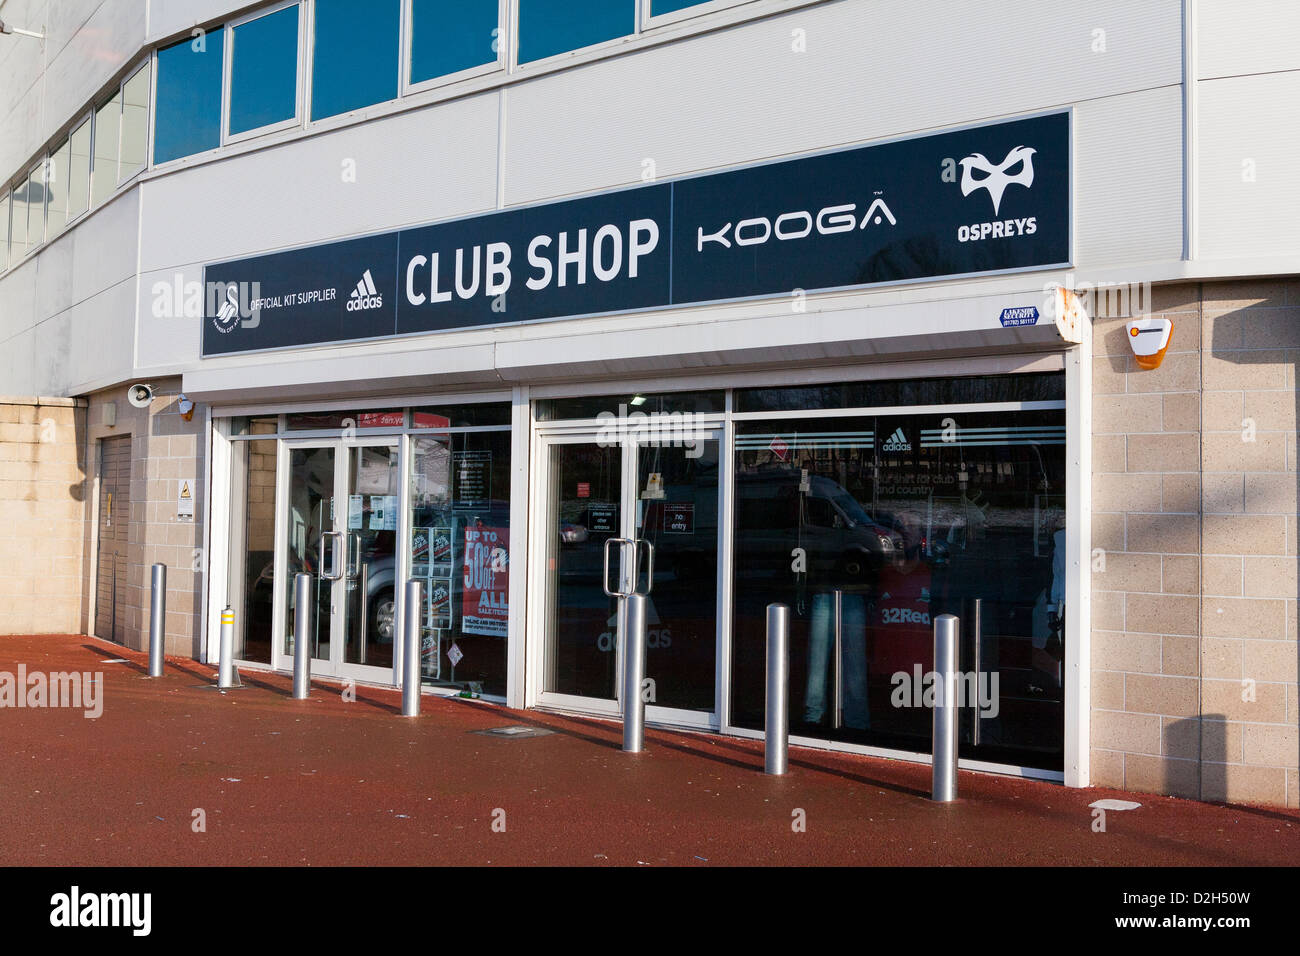 Due to stock take and a shop revamp Swansea City's Cwmdu store will be closed from 4pm today (Friday) until next Saturday (June 6). The Liberty Stadium club shop will also be closed on Monday (June 1) and Friday (June 5) but still open on Tuesday, Wednesday and Thursday.